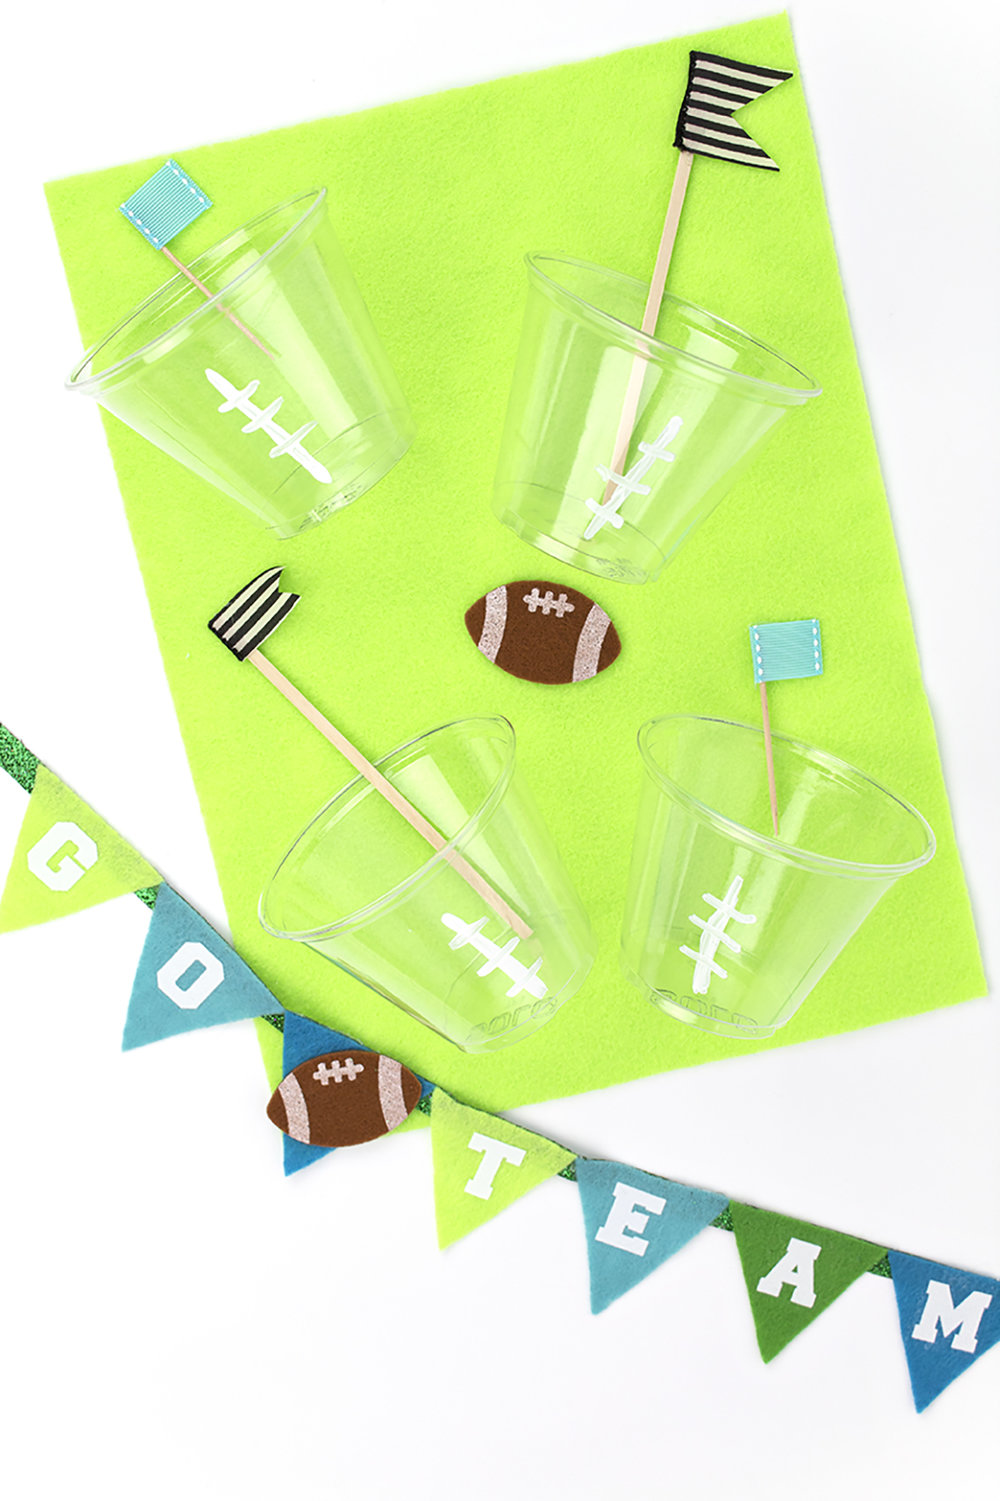 Is it football season yet? I whipped up these easy crafts for your next football gathering. They're quick to make, and feature craft supplies you probably have at home. They're perfect for a mini football party! Click for the DIY.